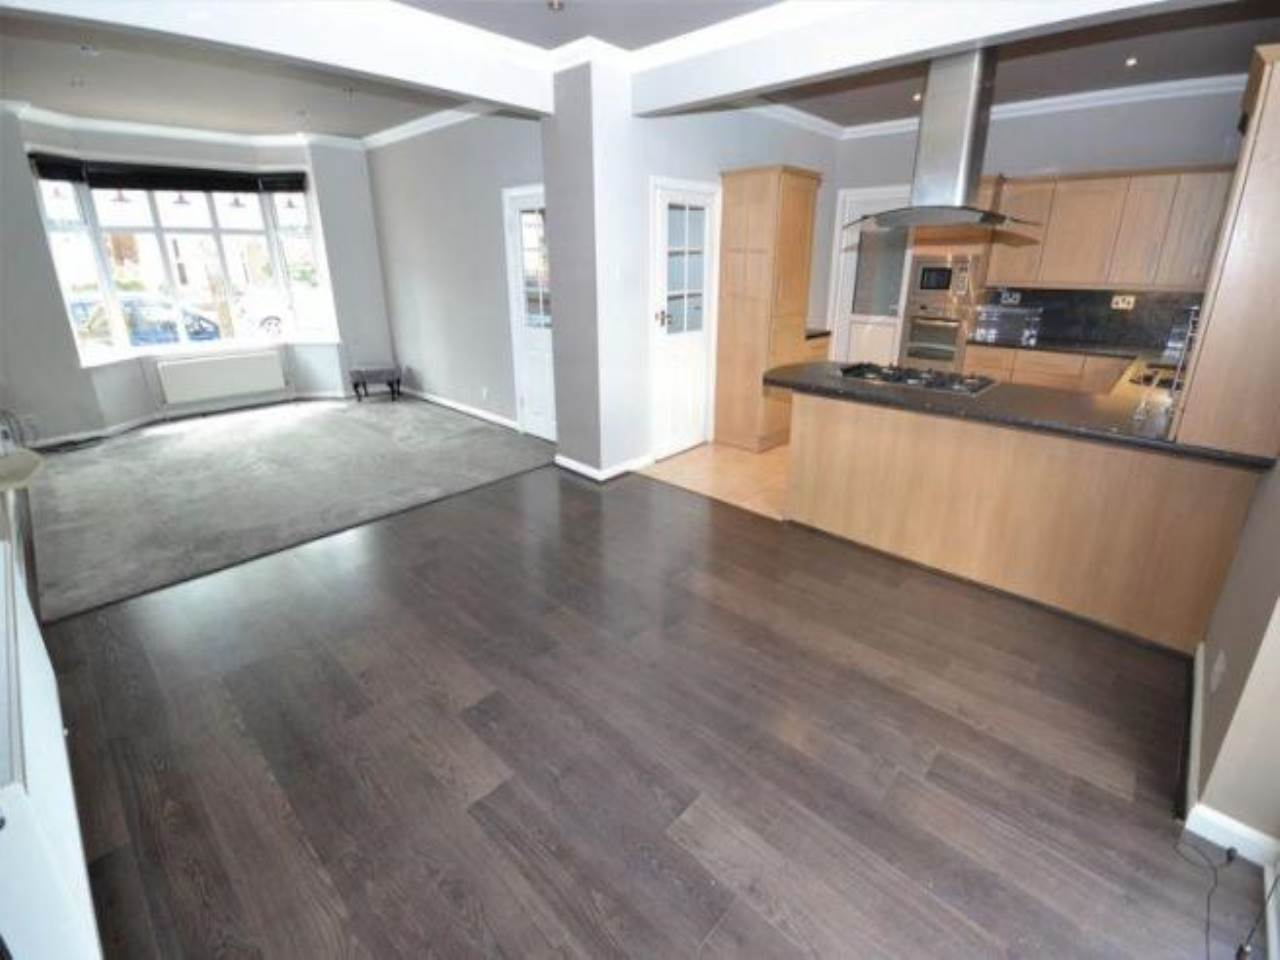 4 bed house for sale in Cowper Road, Moordown 1